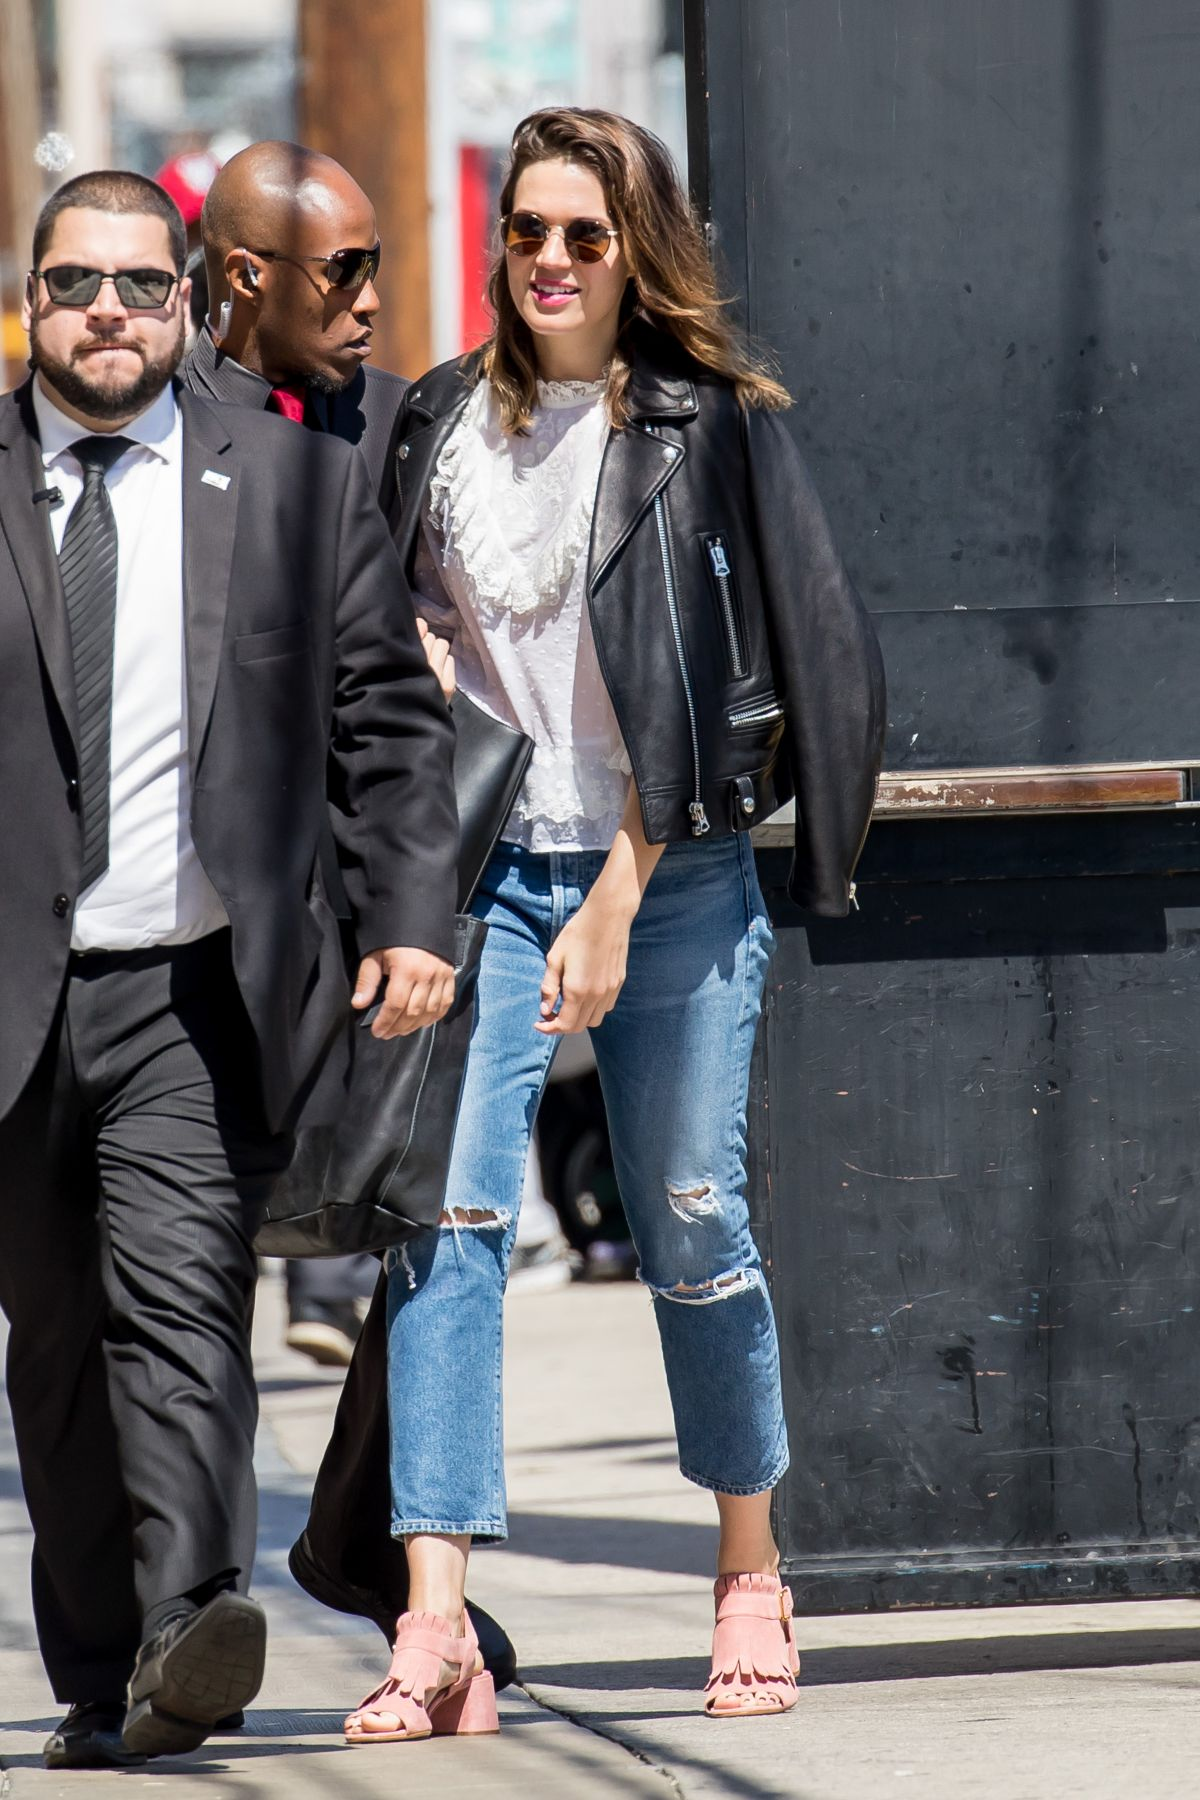 Mandy Moore At 'Jimmy Kimmel Live' in Hollywood   mandy-moore-at-jimmy-kimmel-live-in-hollywood-_3